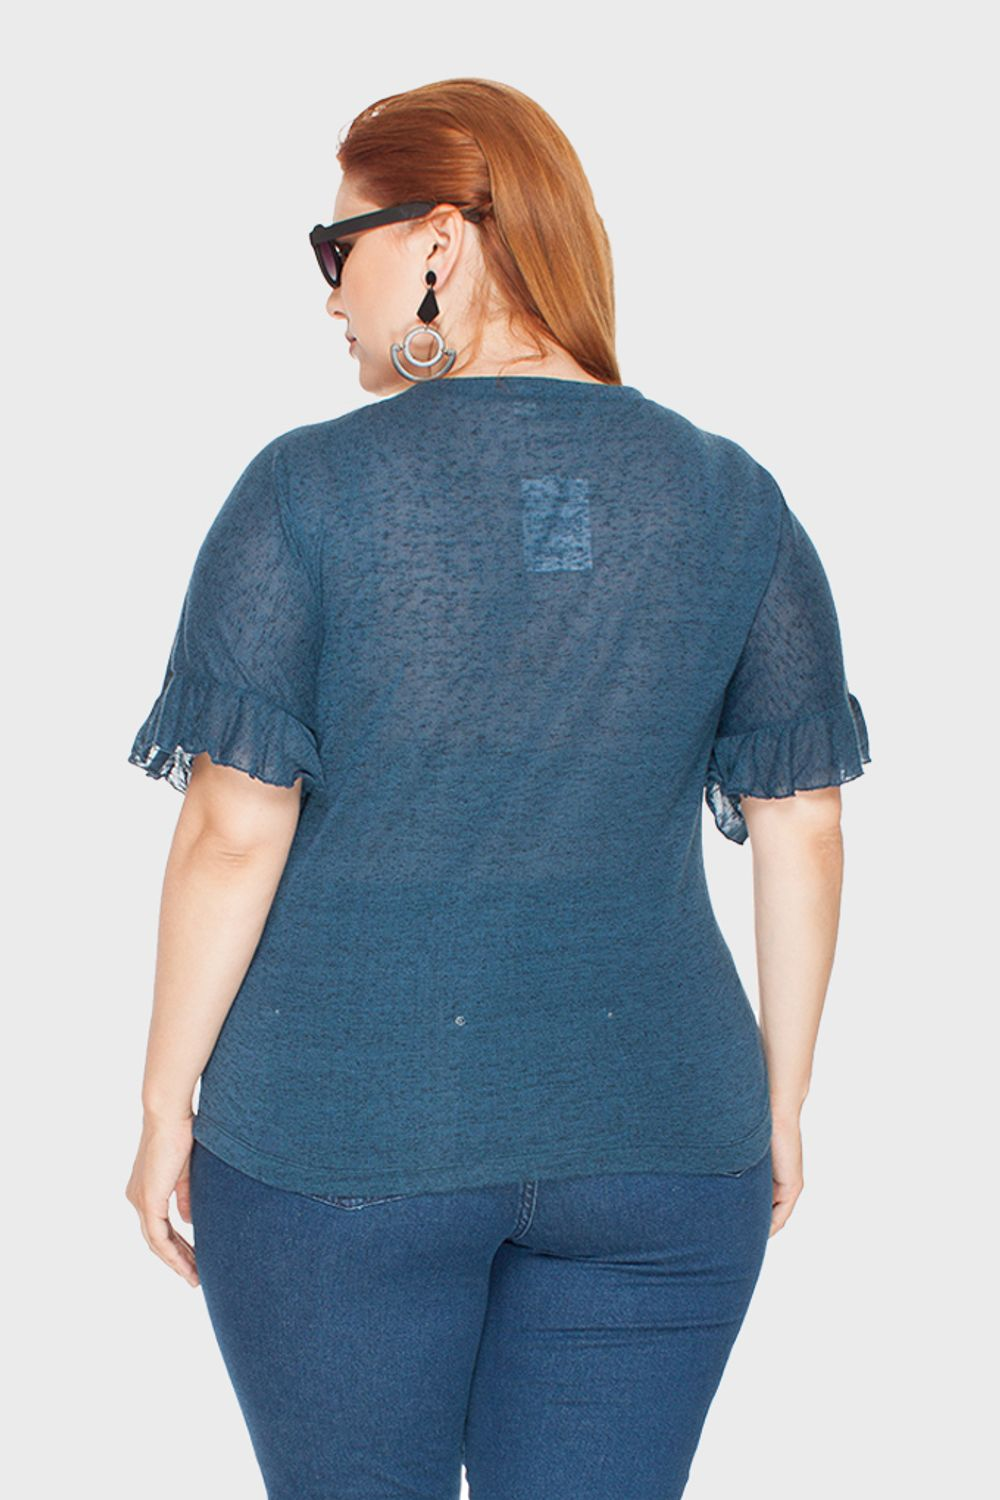 Blusa-New-Antropology-Babados-Plus-Size_2